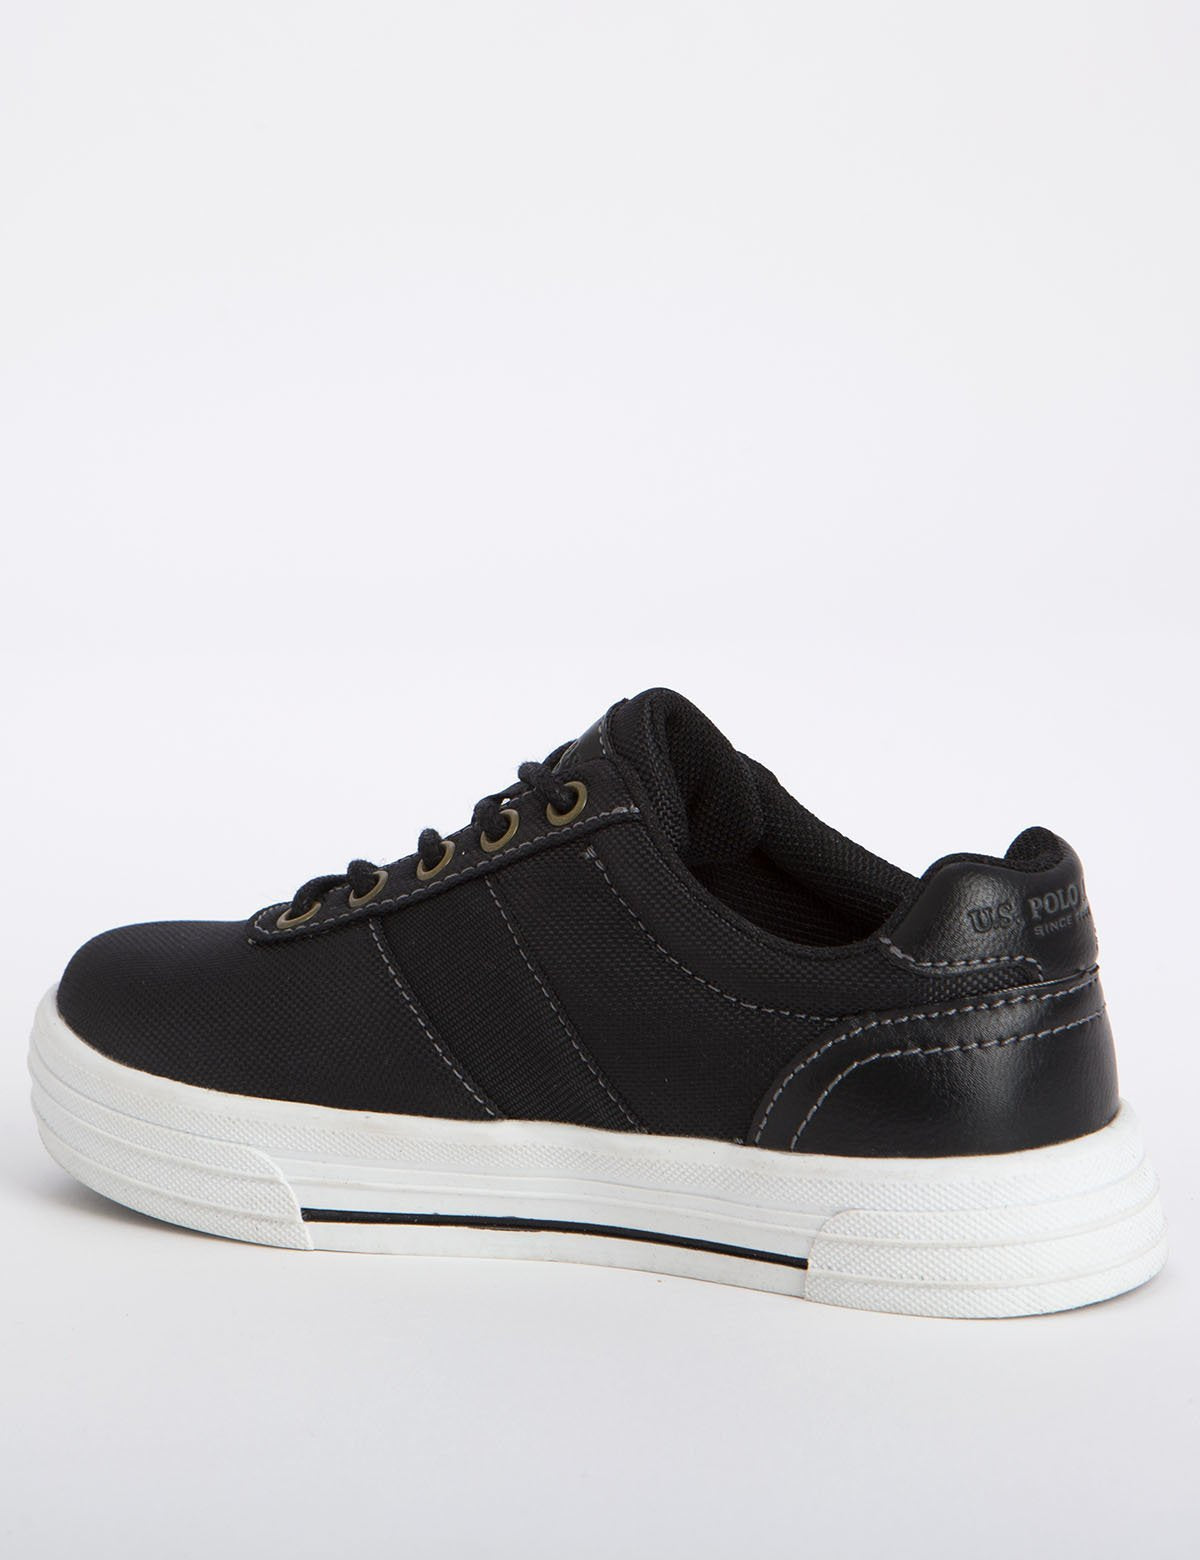 Boys Helm Nylon Sneaker - U.S. Polo Assn.